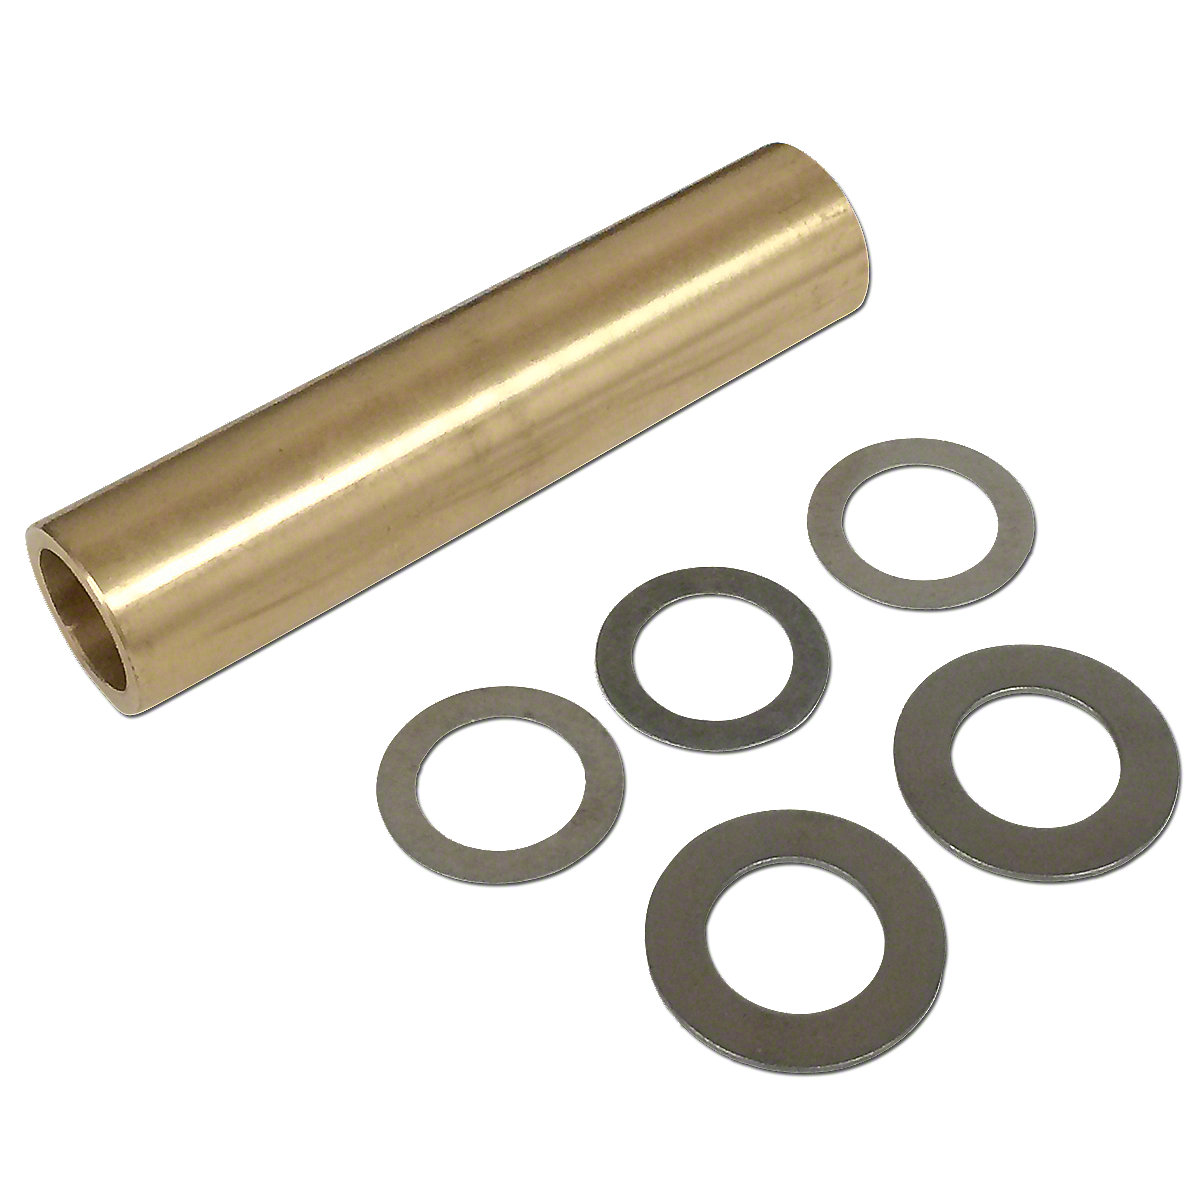 Delco Distributor Shaft Bushing And Shim Kit For Massey Ferguson: F40, 202, 204, 40, Super 90, 85, 88, TO20, TO30, TO35, 50, 65, Massey Harris: 50.